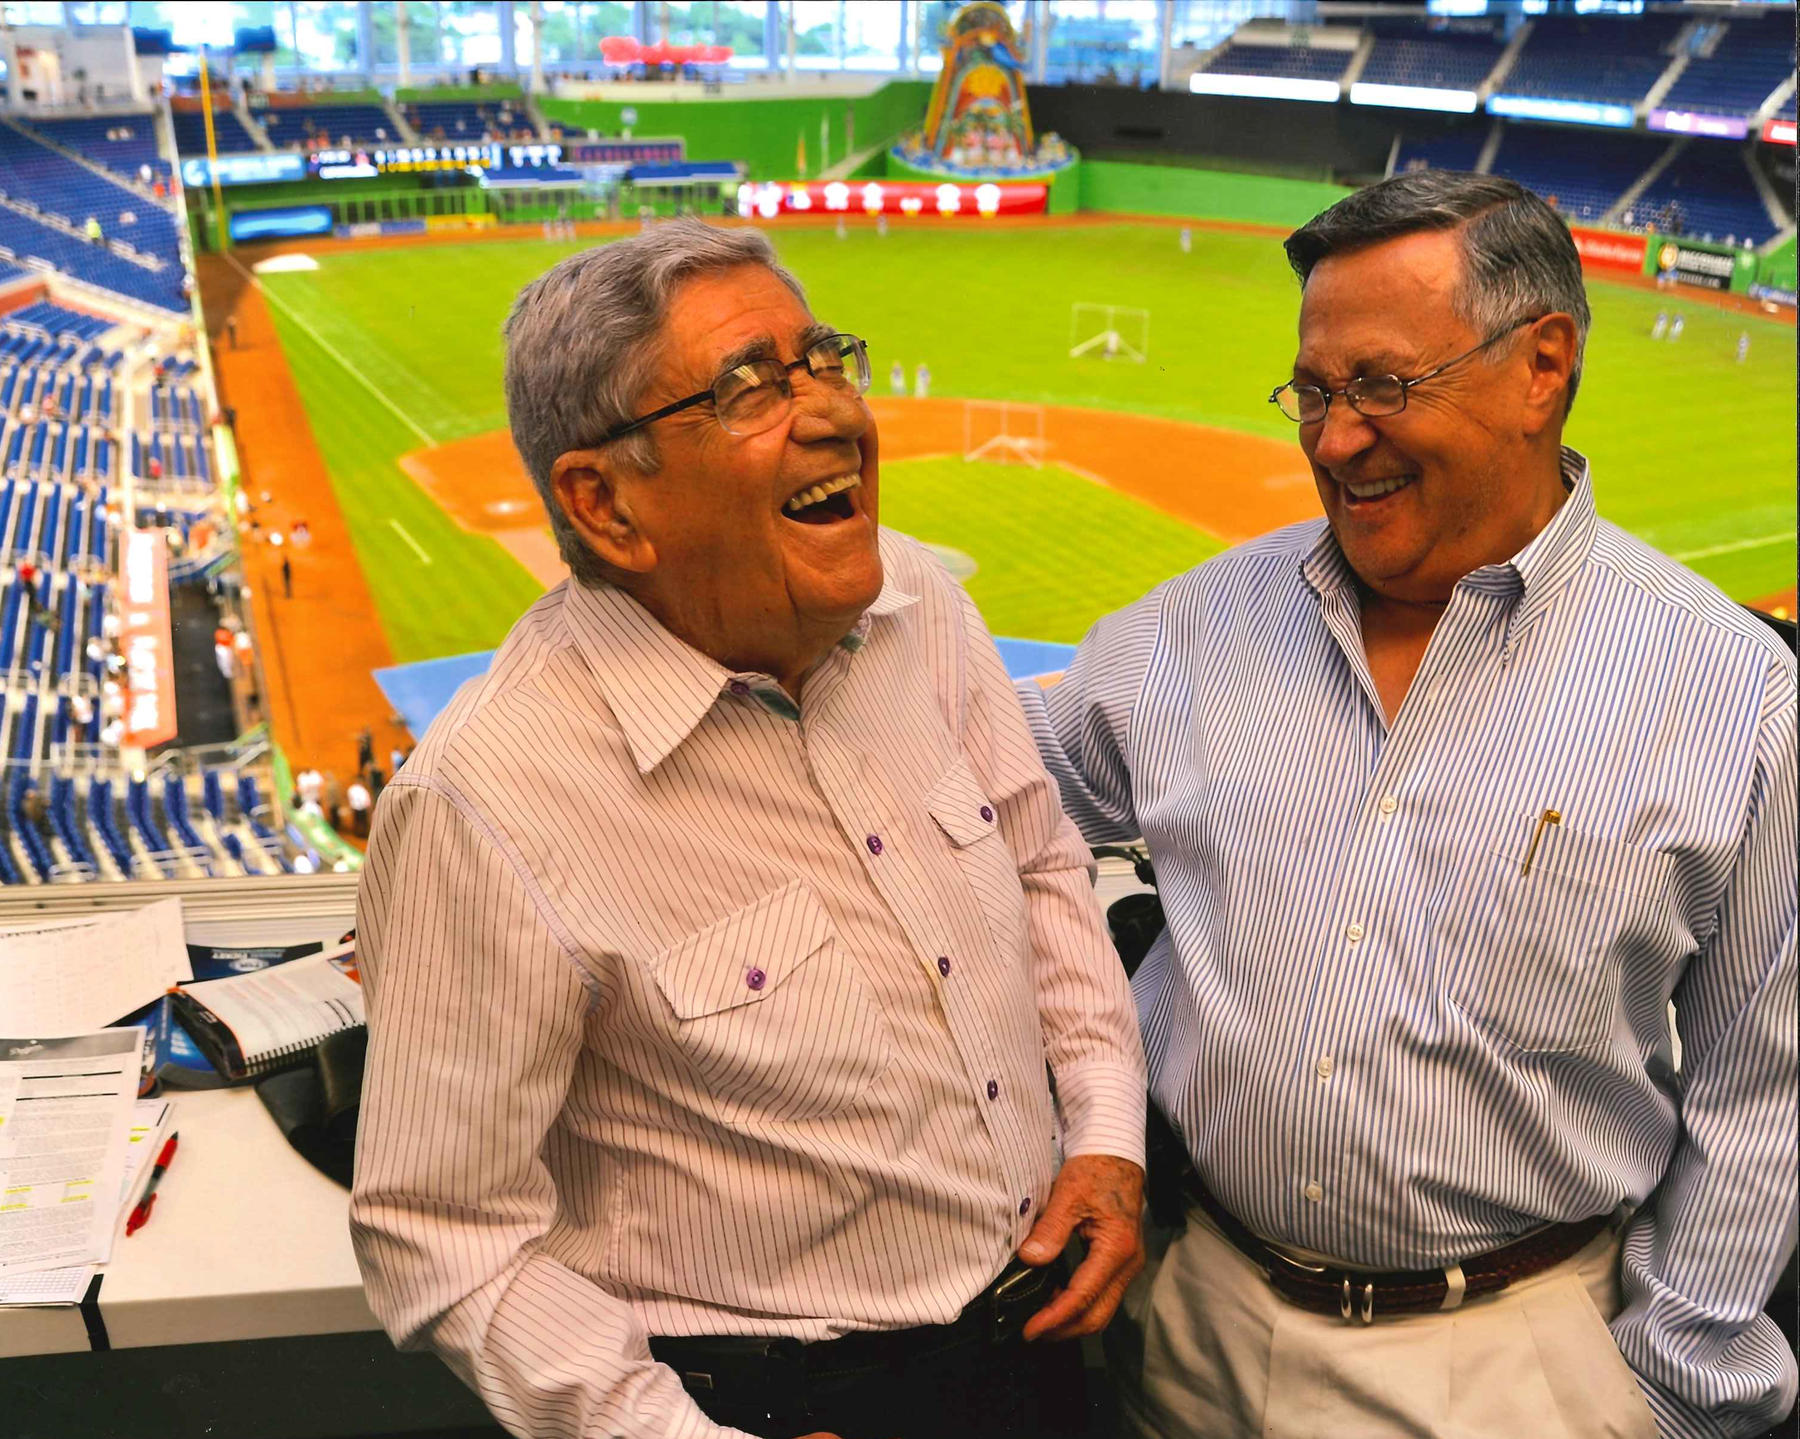 Felo Ramírez, the Spanish language voice of the Miami Marlins, shares a laugh with the Spanish language voice of the Los Angeles Dodgers, Jaime Jarrín. (National Baseball Hall of Fame and Museum)